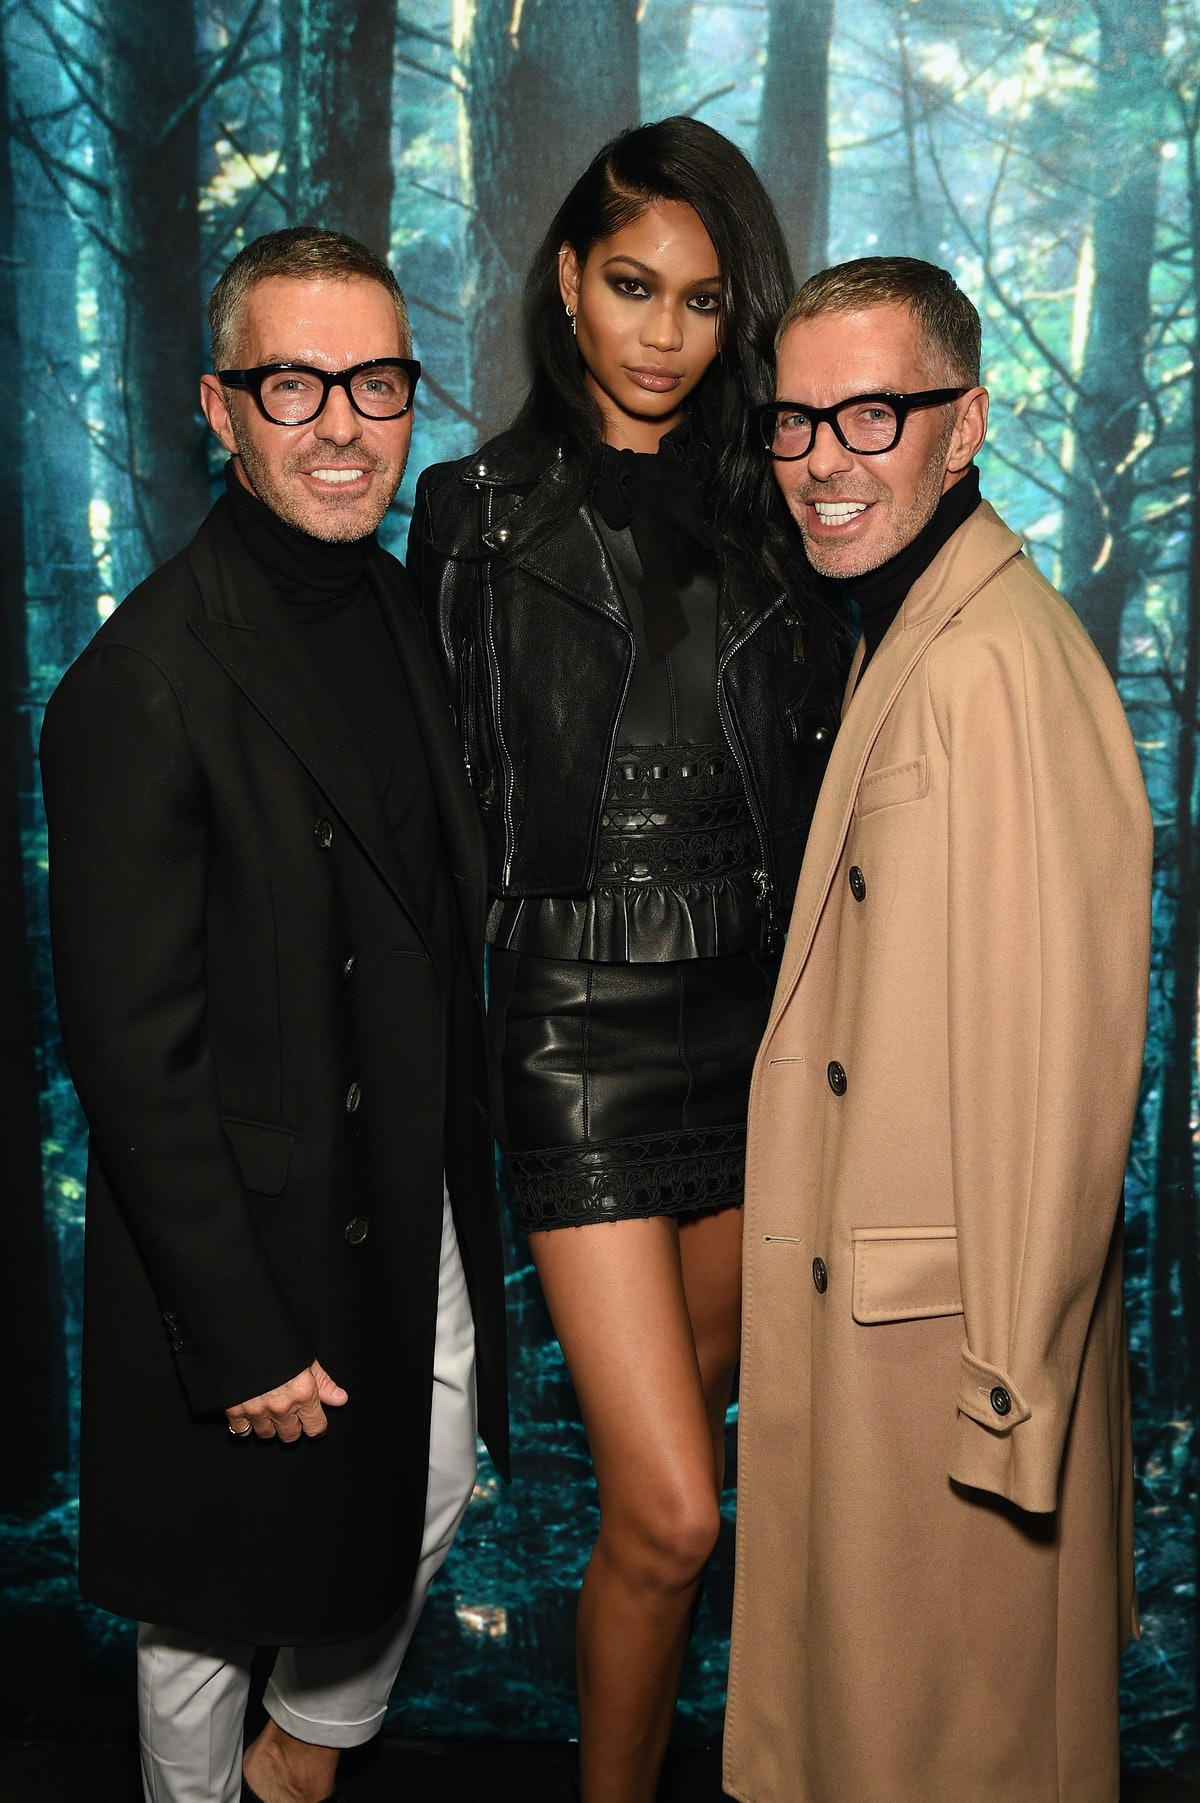 Dan and Dean Caten with Chanel Iman